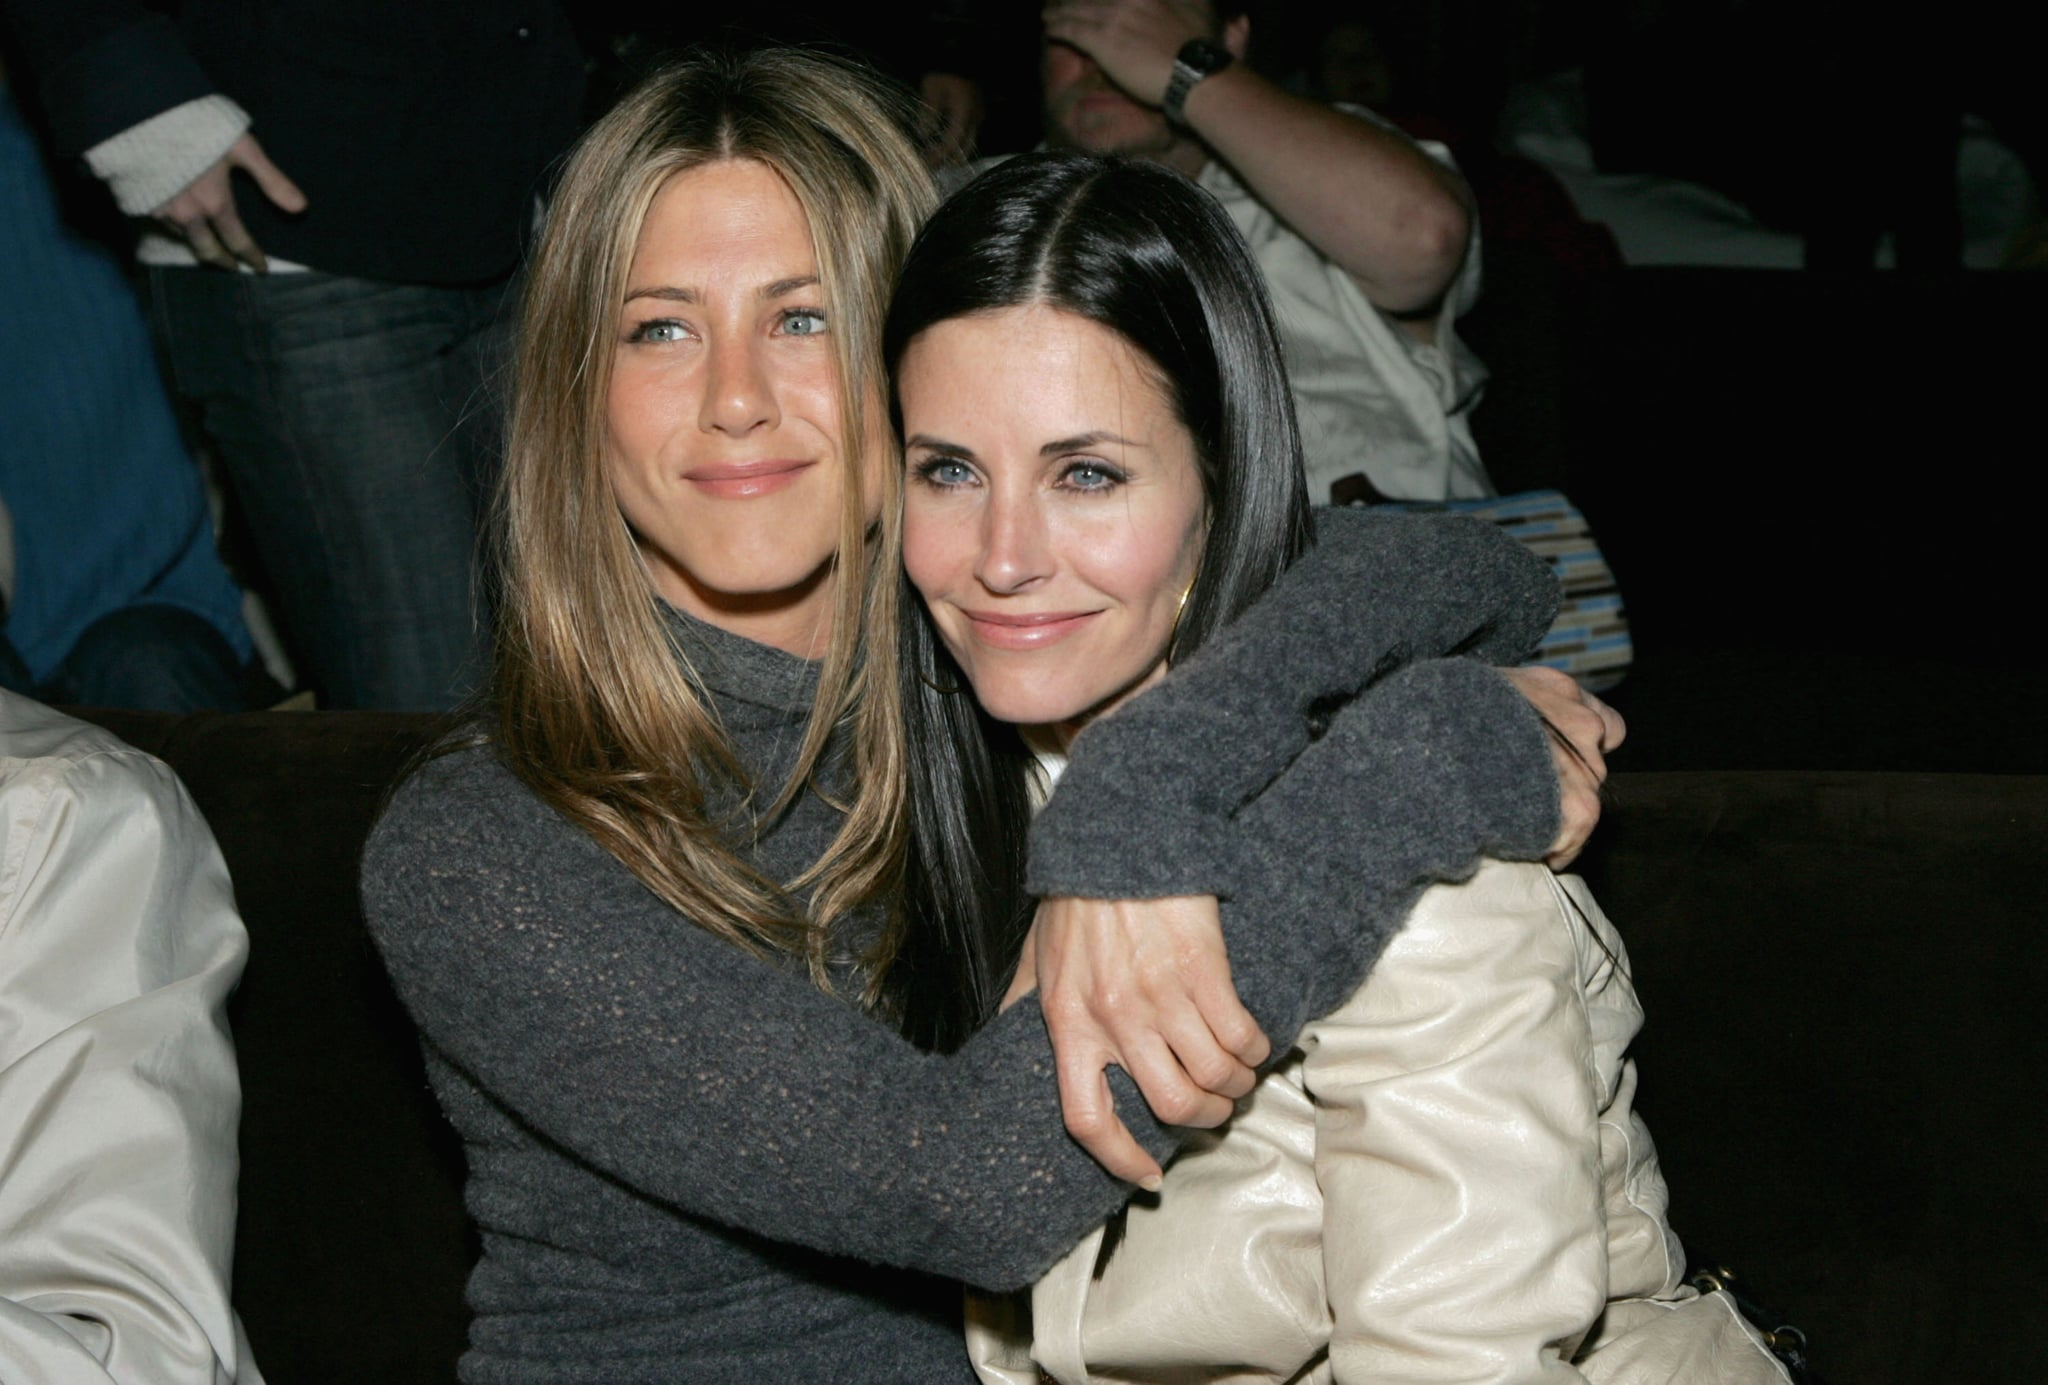 LOS ANGELES, CA - APRIL 11:  Actors Jennifer Aniston and Courteney Cox attend the after party at the L.A. premiere for